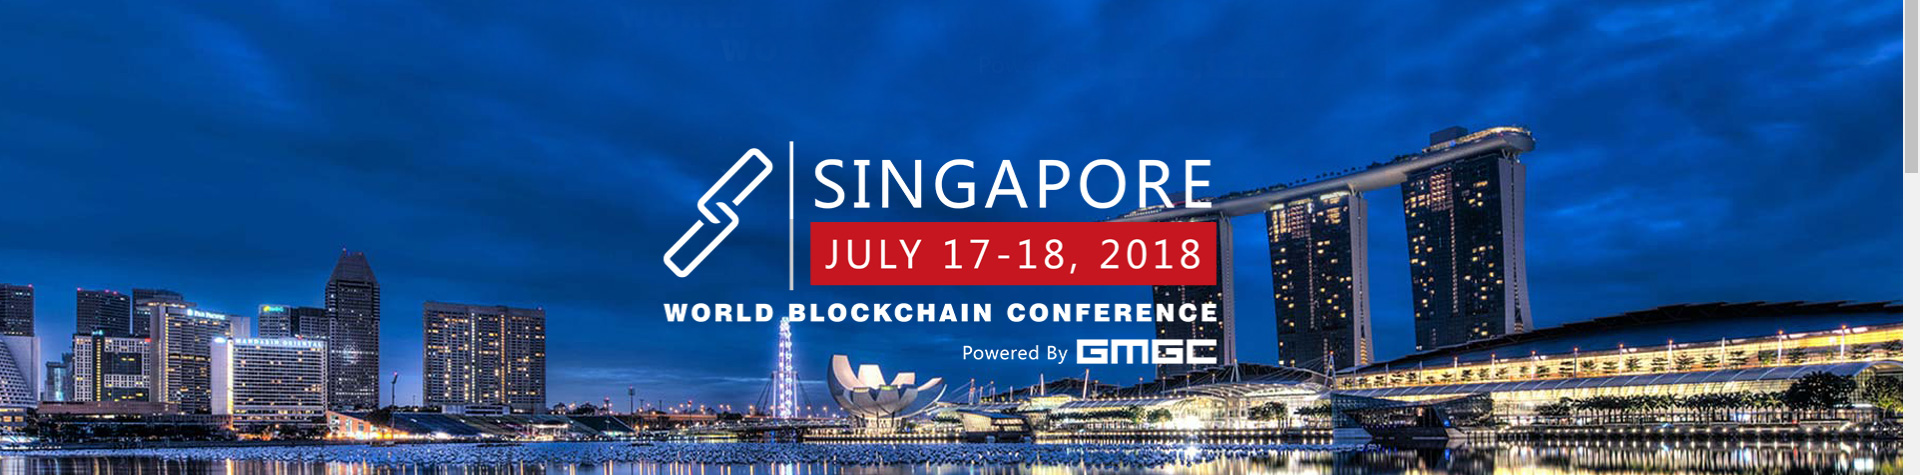 World Blockchain Conference 2018